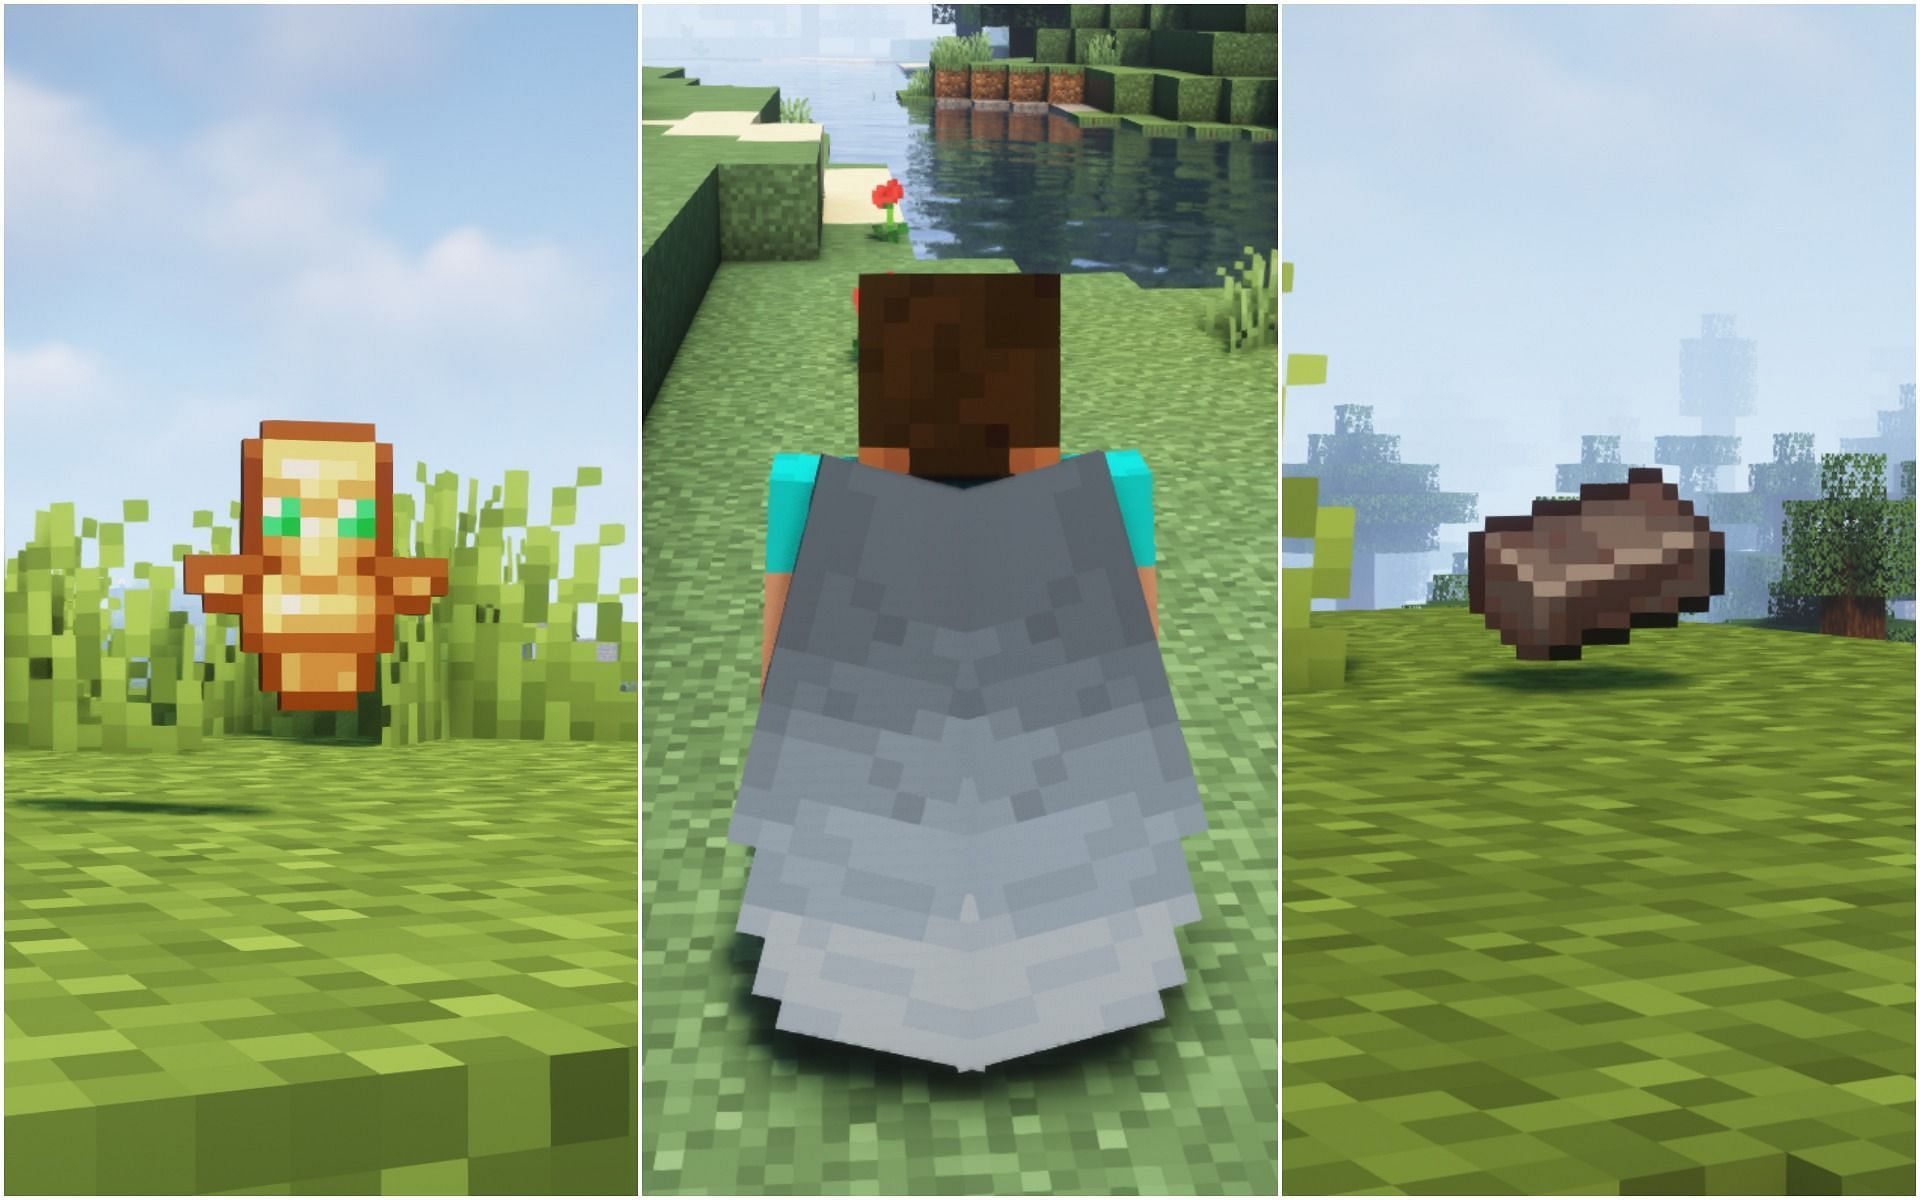 Top 5 items that changed Minecraft